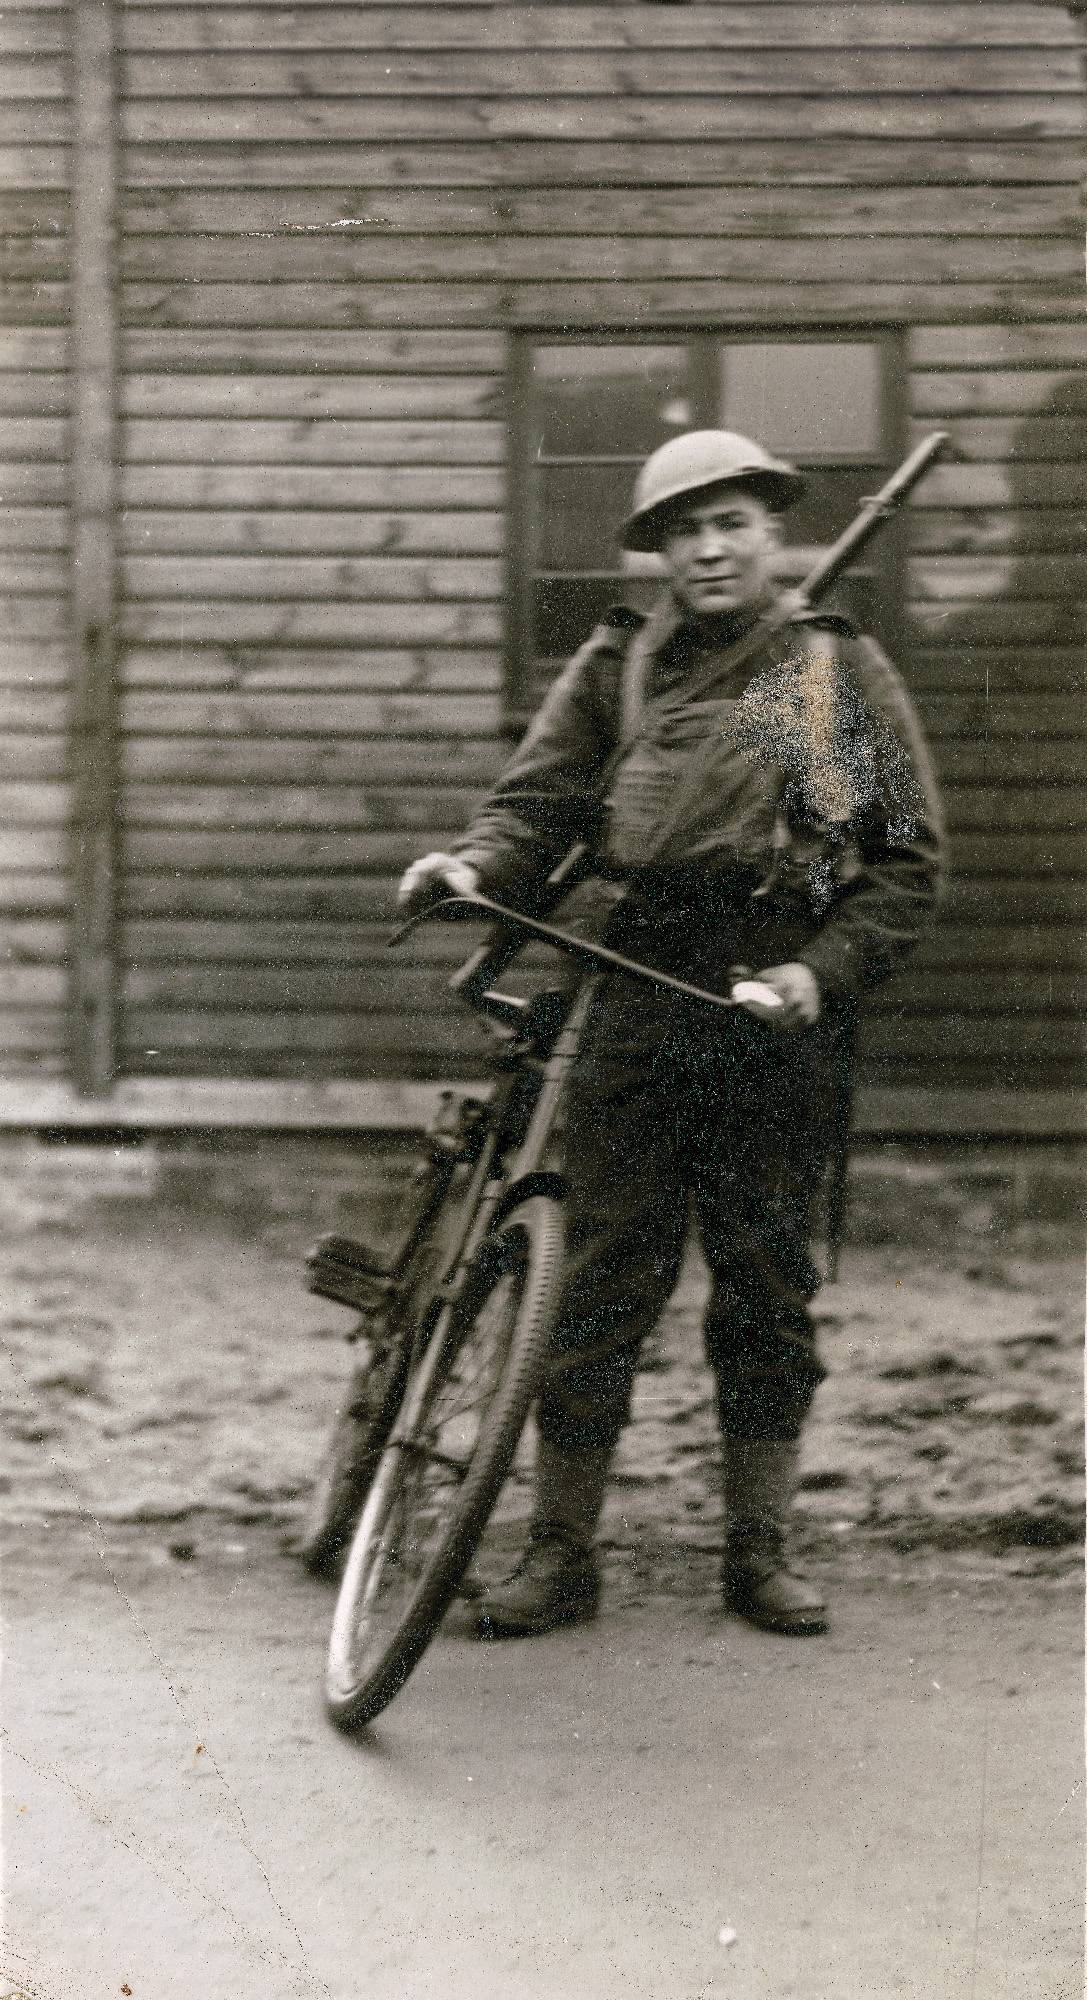 Private Harold Hammond | In an age without personal radios, he has been tasked as a runner to carry messages and orders, and he has been issued a bicycle to make him more efficient.